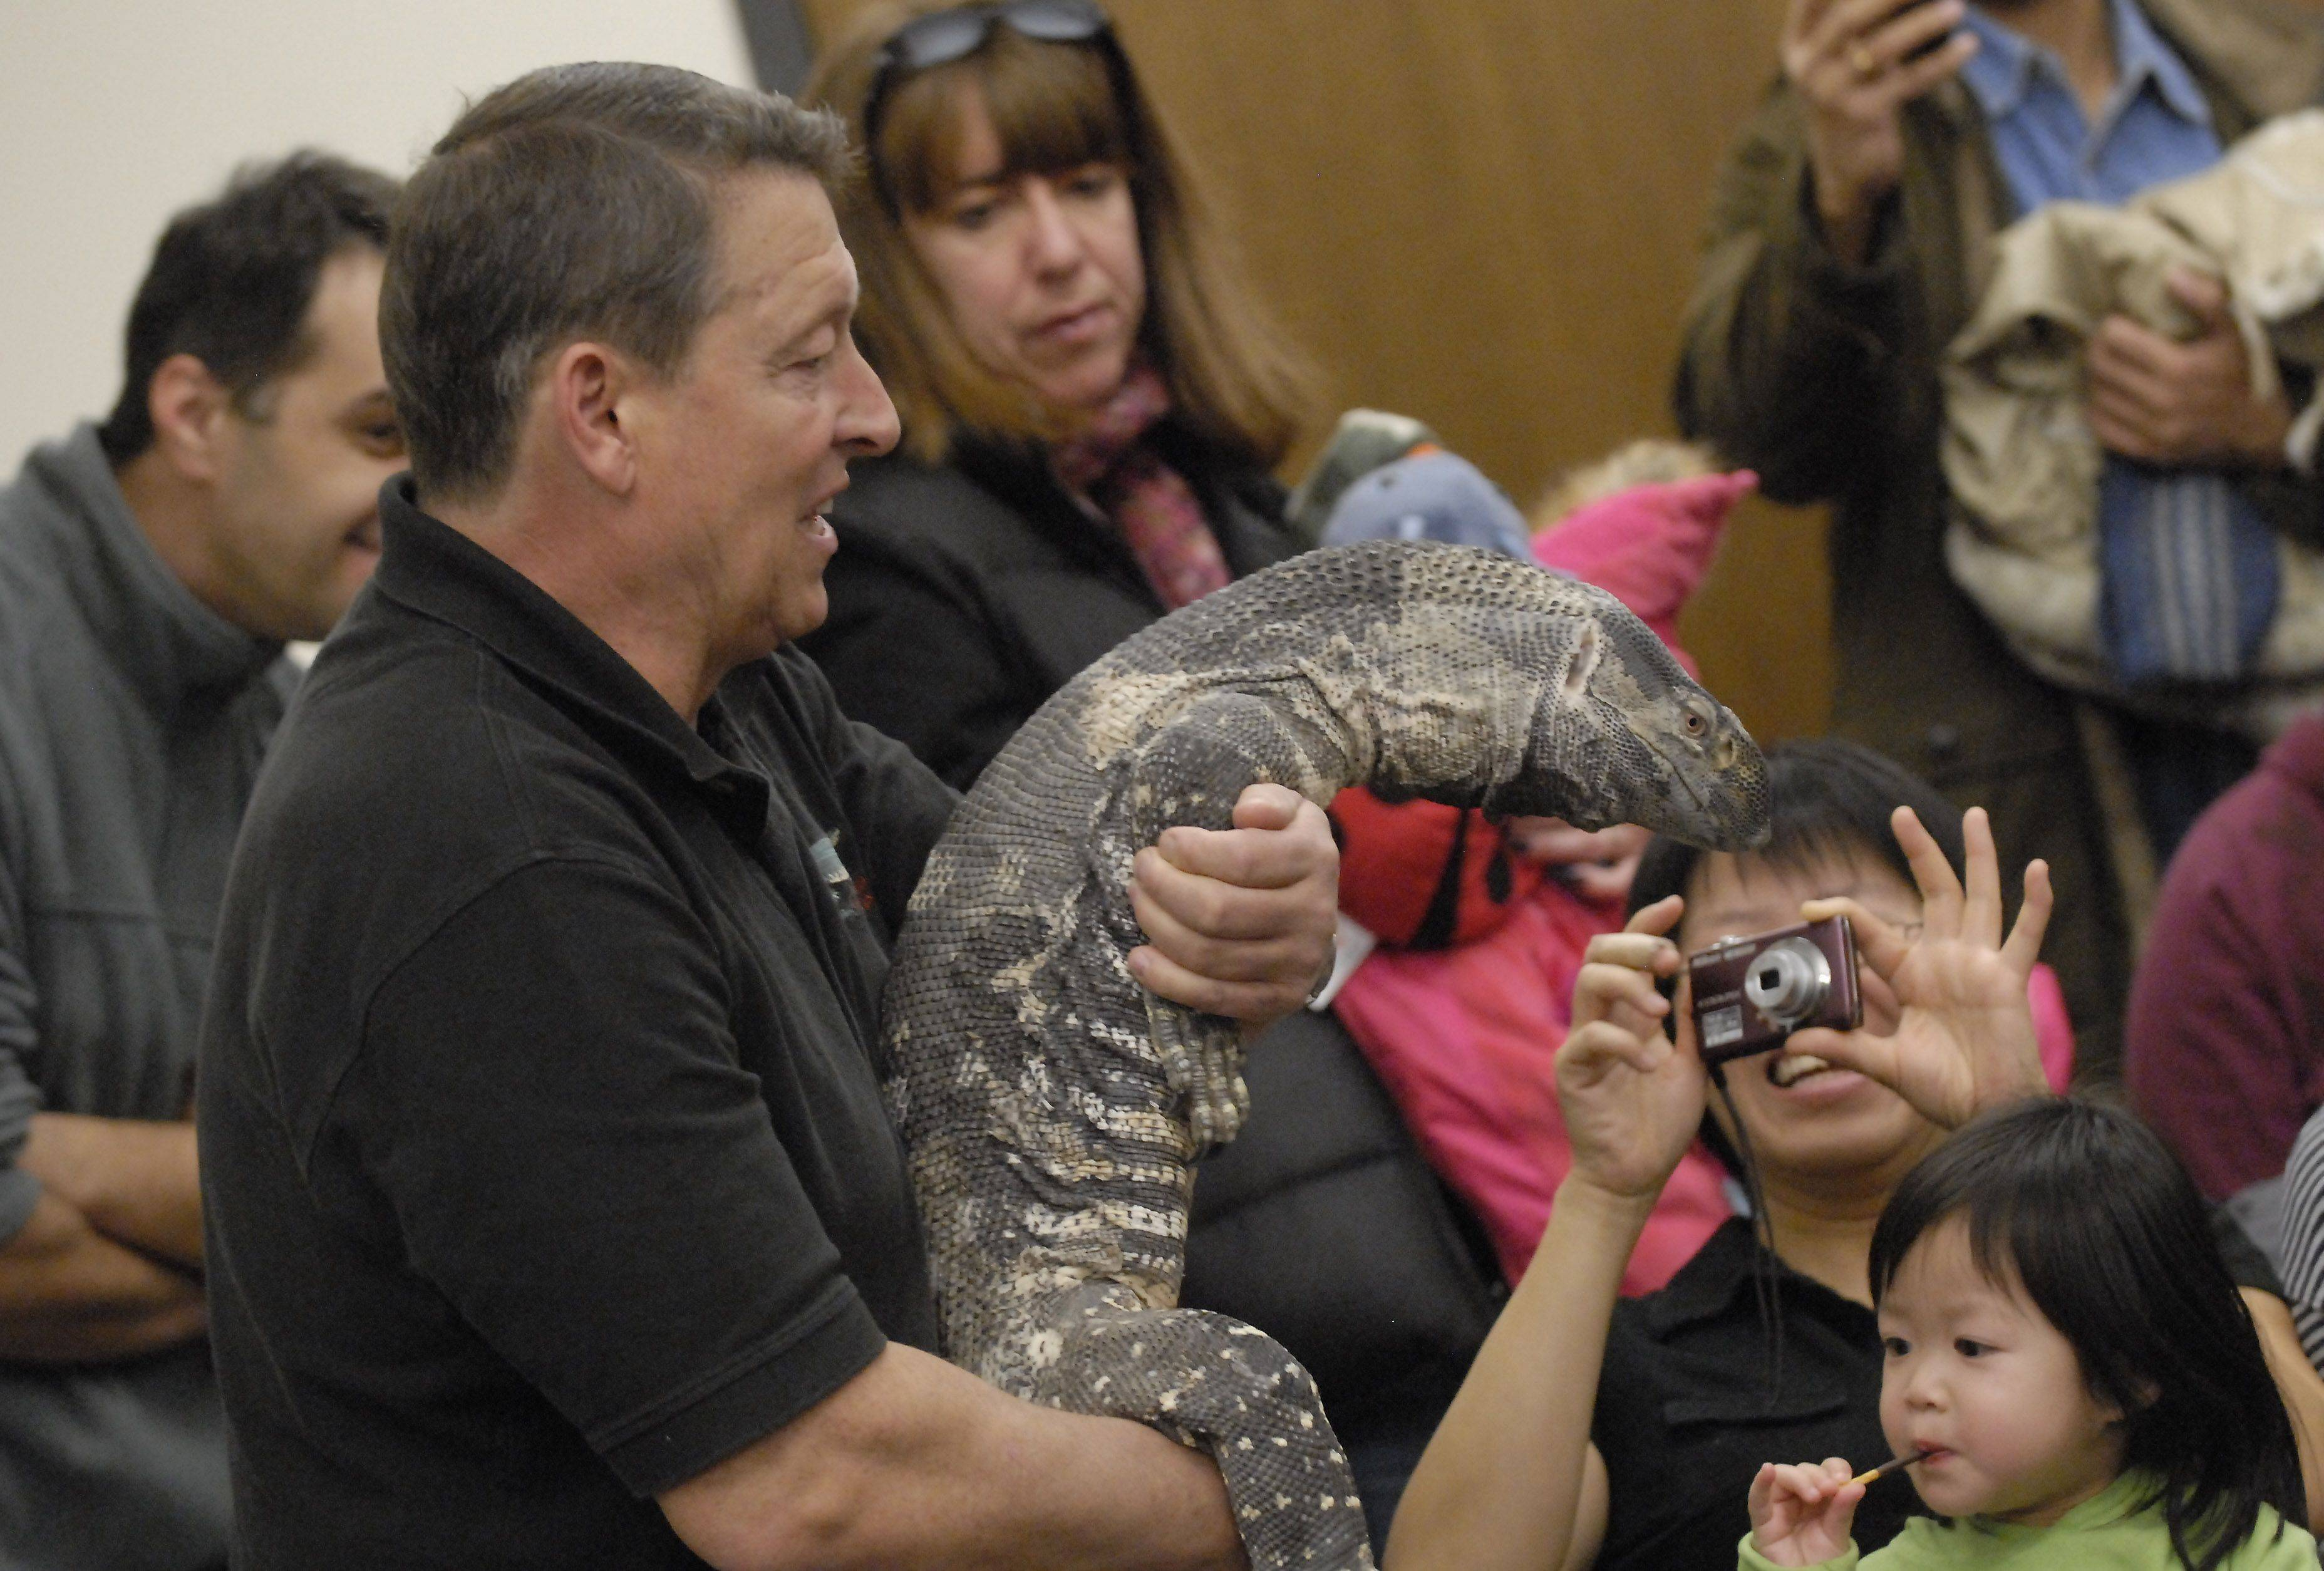 Jim Nesci with Cold Blooded Creatures gave visitors an up close and personal look at this monitor lizard and other reptiles he brought Wednesday to the Indian Trails Public Library in Wheeling.